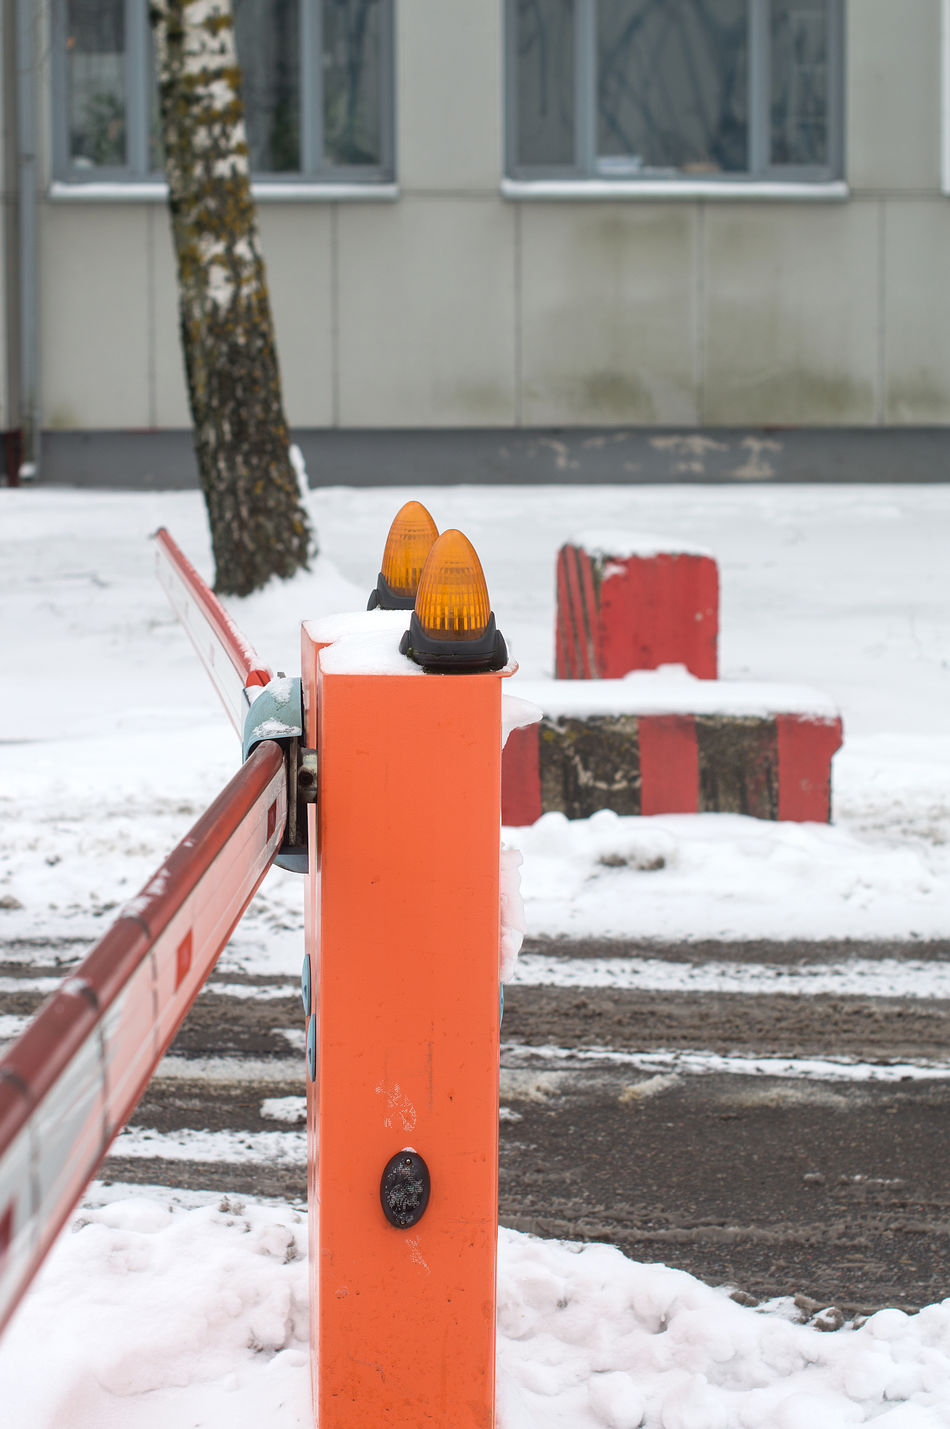 Winter road with tyre print and red entrance barrier pole Barrier Business City Cold Temperature Day Fire Hydrant Frozen Lamp Nature No People Outdoors Pass Permit Red Signal Snow Snowing Transportation Winter EyeEmNewHere